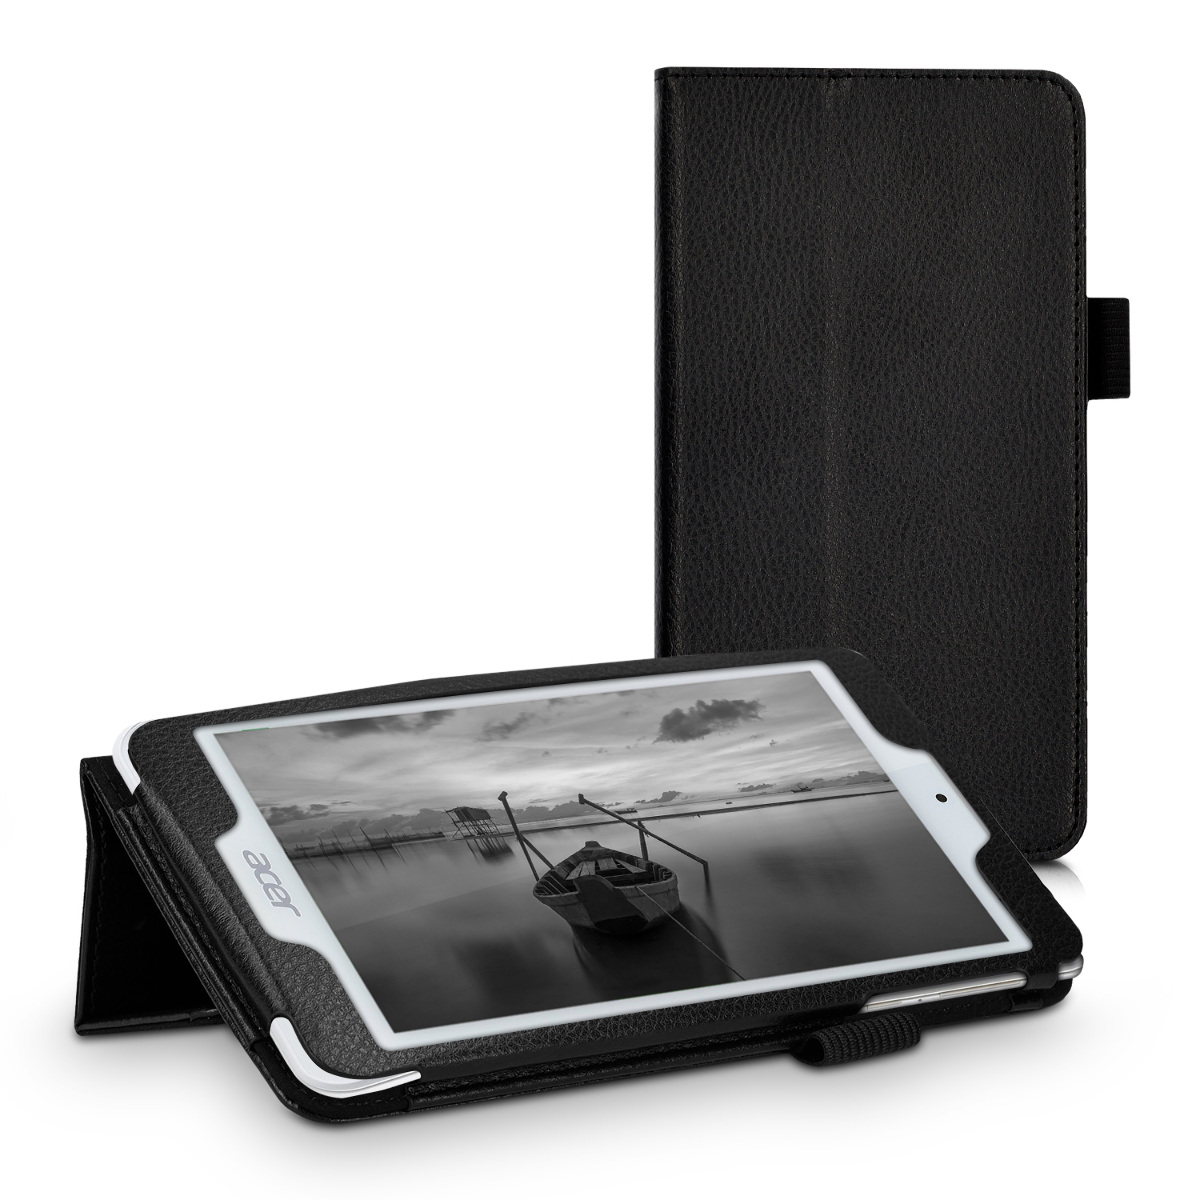 ETUI-A-RABAT-POUR-ACER-ICONIA-ONE-7-B1-780-AVEC-SUPPORT